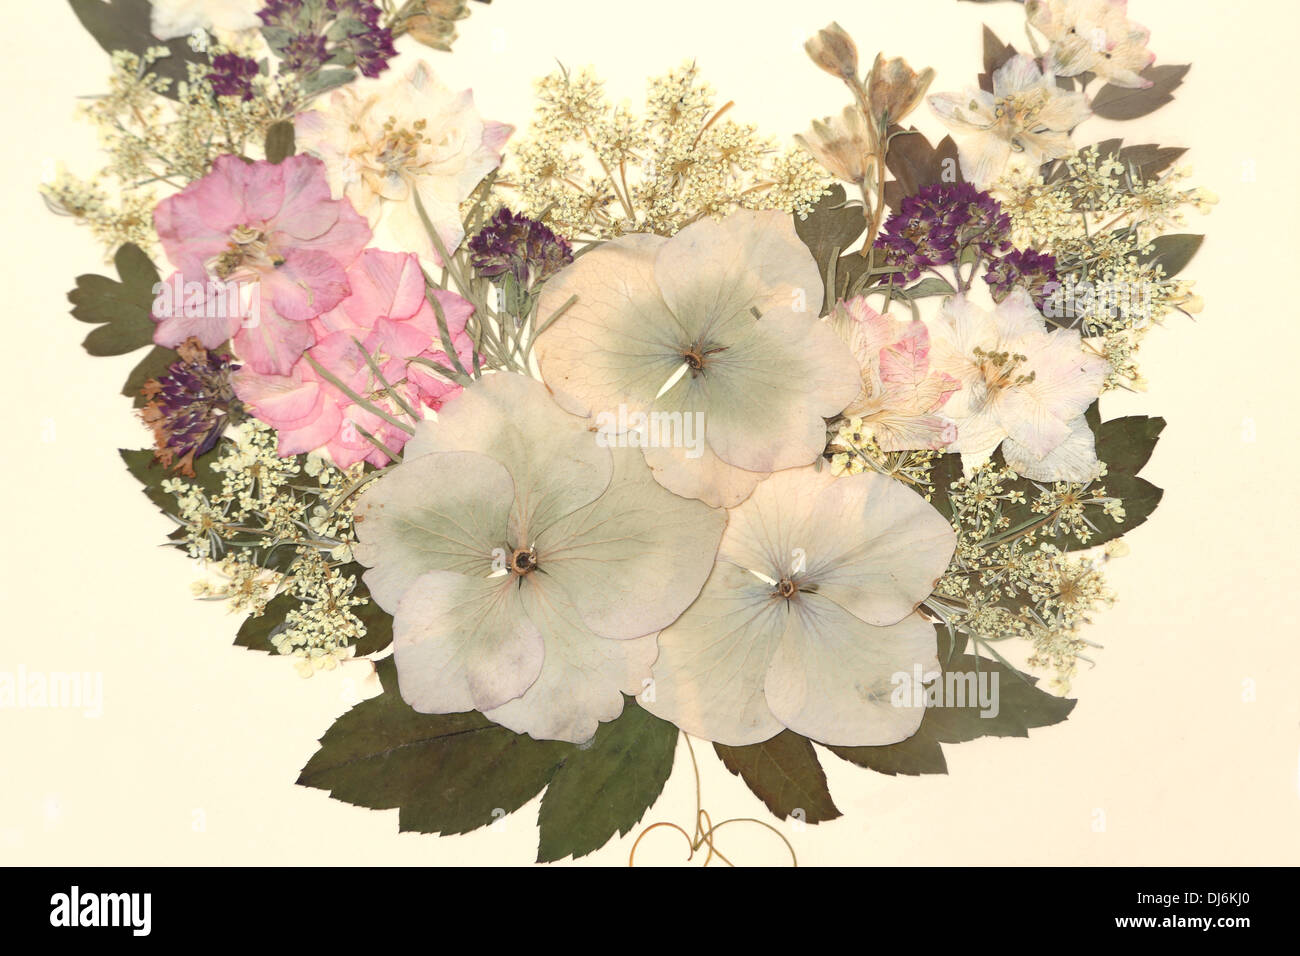 Dried Pressed Flowers In Frame Stock Royalty Free Image Alamy